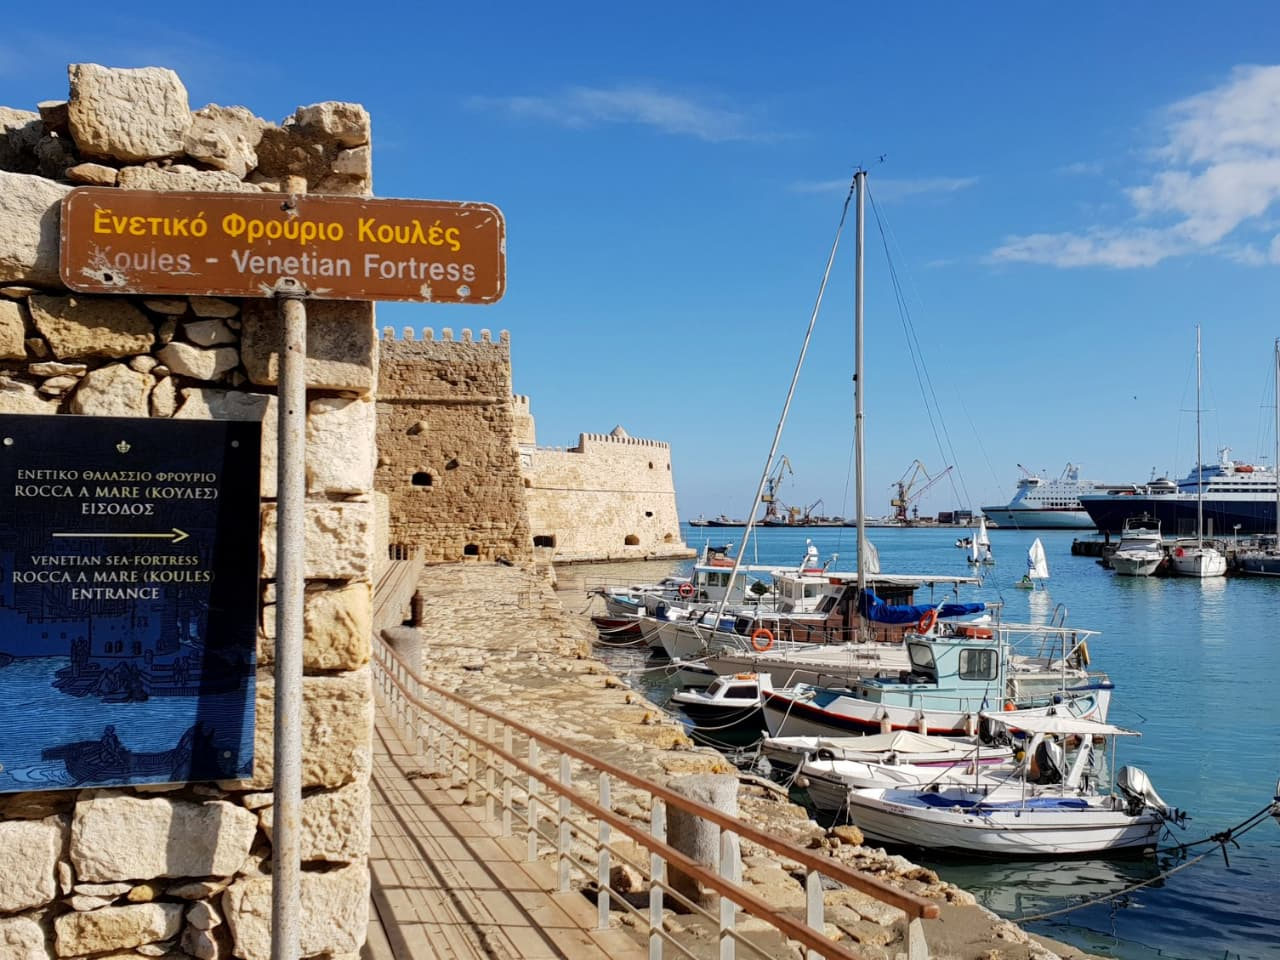 A Tour of the City of Heraklion Crete